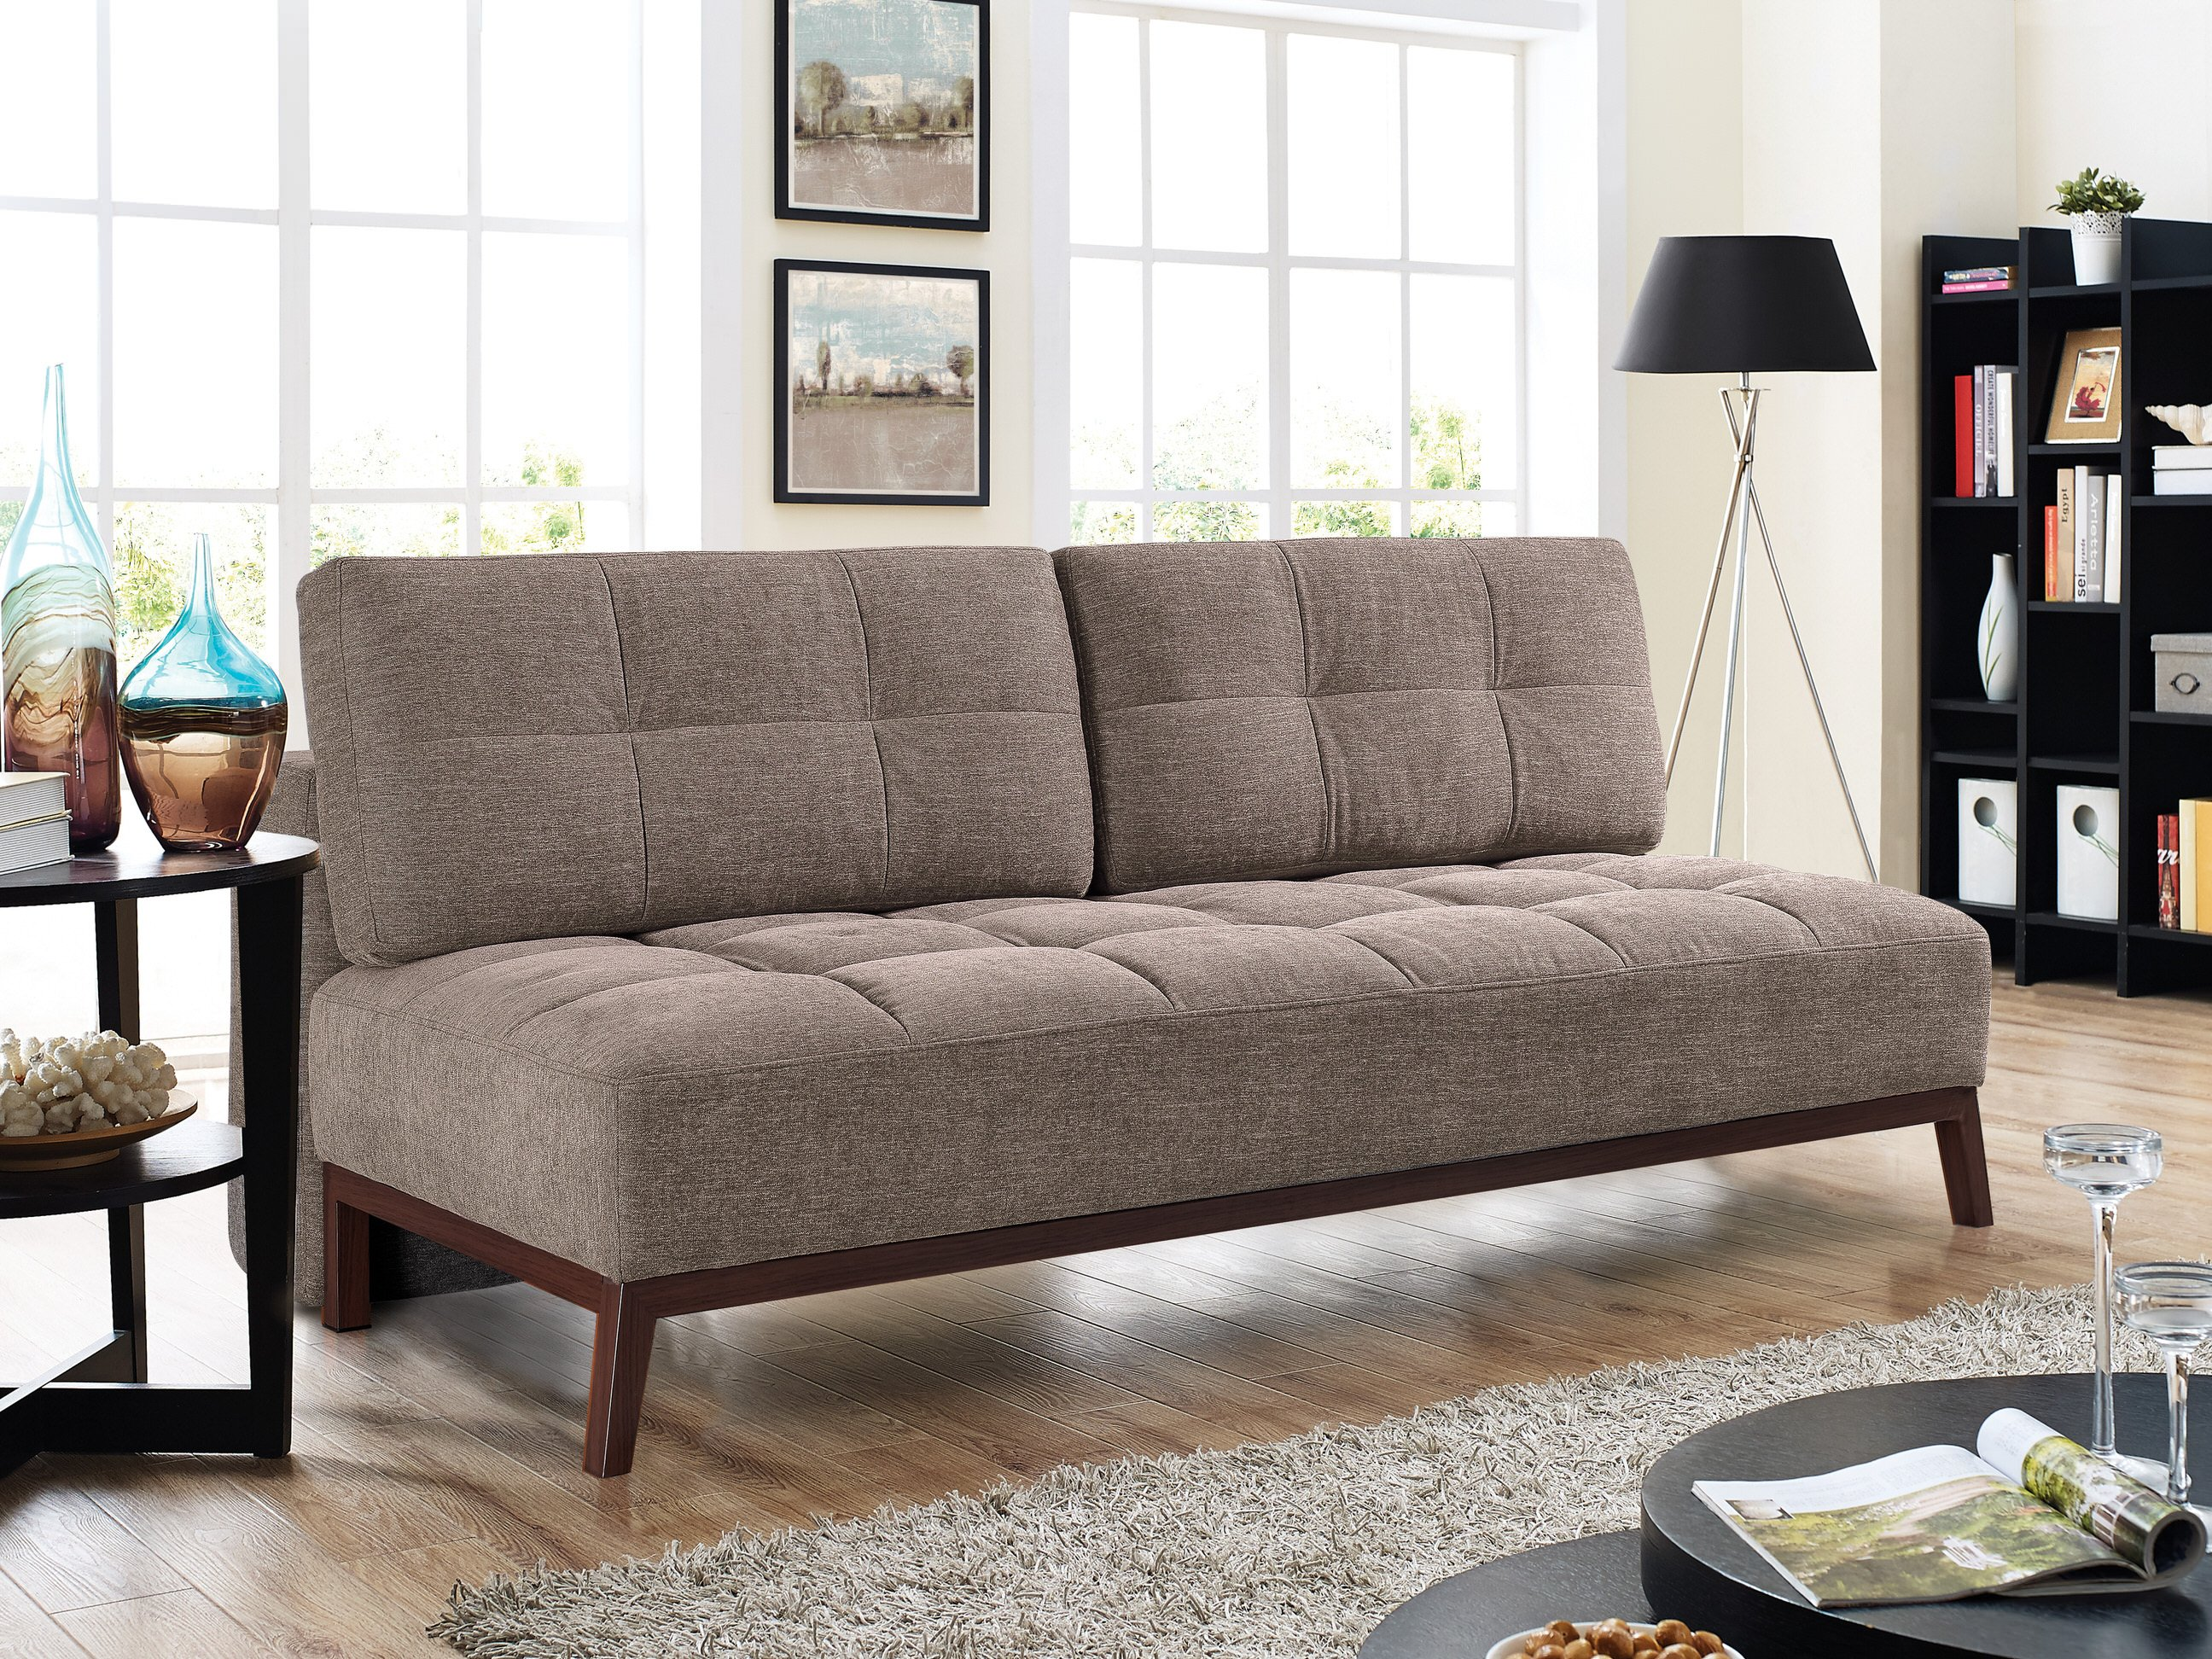 Tremendous Santana Convertible Sofa Bed Brown By Lifestyle Solutions Andrewgaddart Wooden Chair Designs For Living Room Andrewgaddartcom